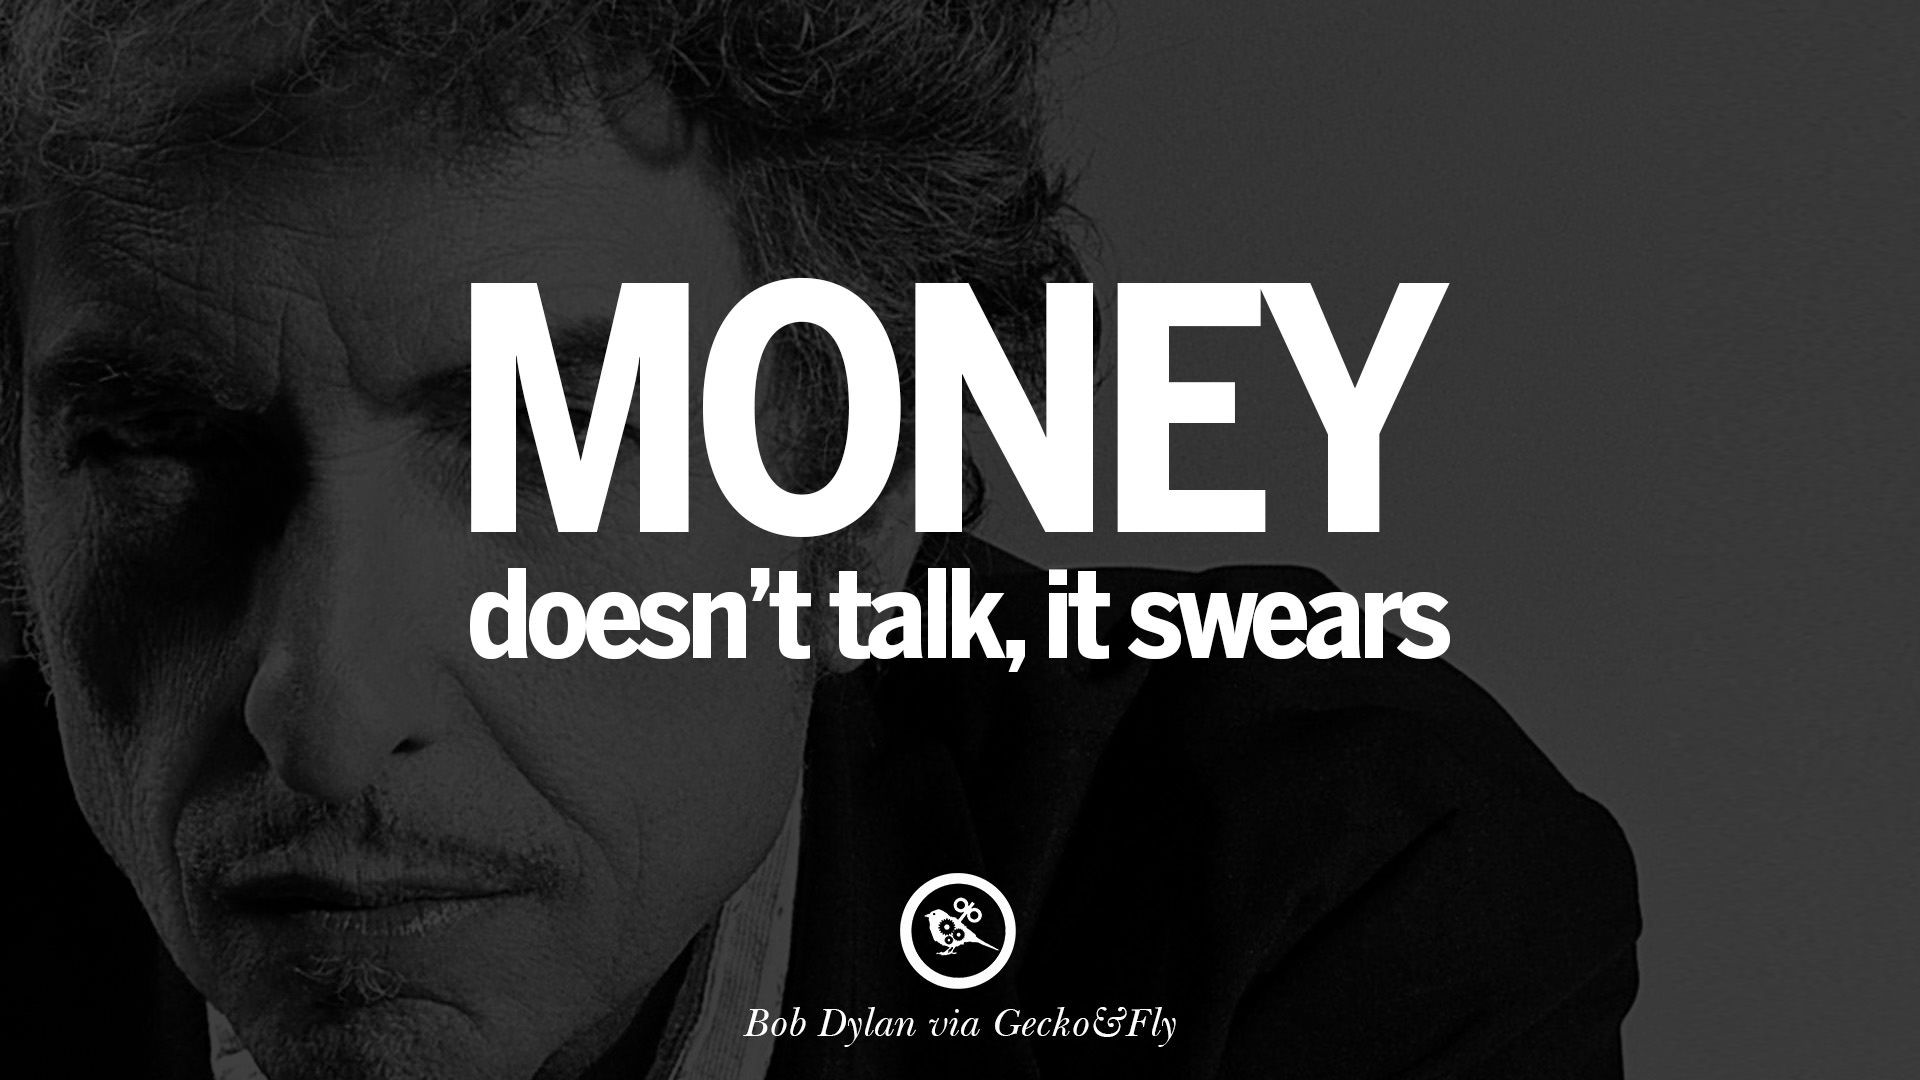 True Love Hd Wallpapers With Quotes 27 Inspirational Bob Dylan Quotes On Freedom Love Via His